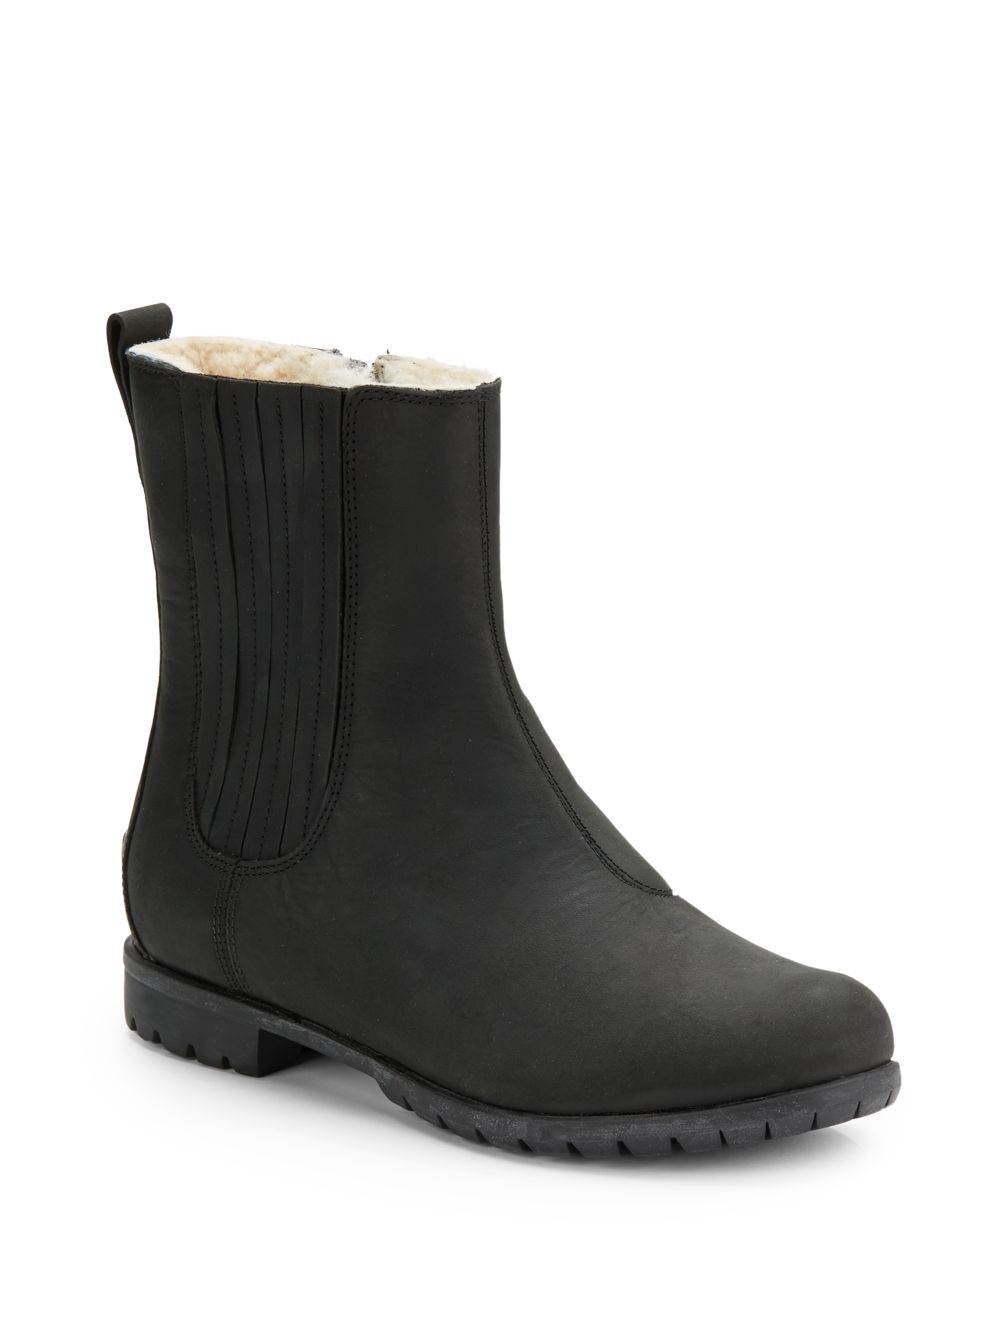 6ea7f2e986d2 ... new style lyst ugg ramos sidezip short leather boots in black 6a1d8  e68fb